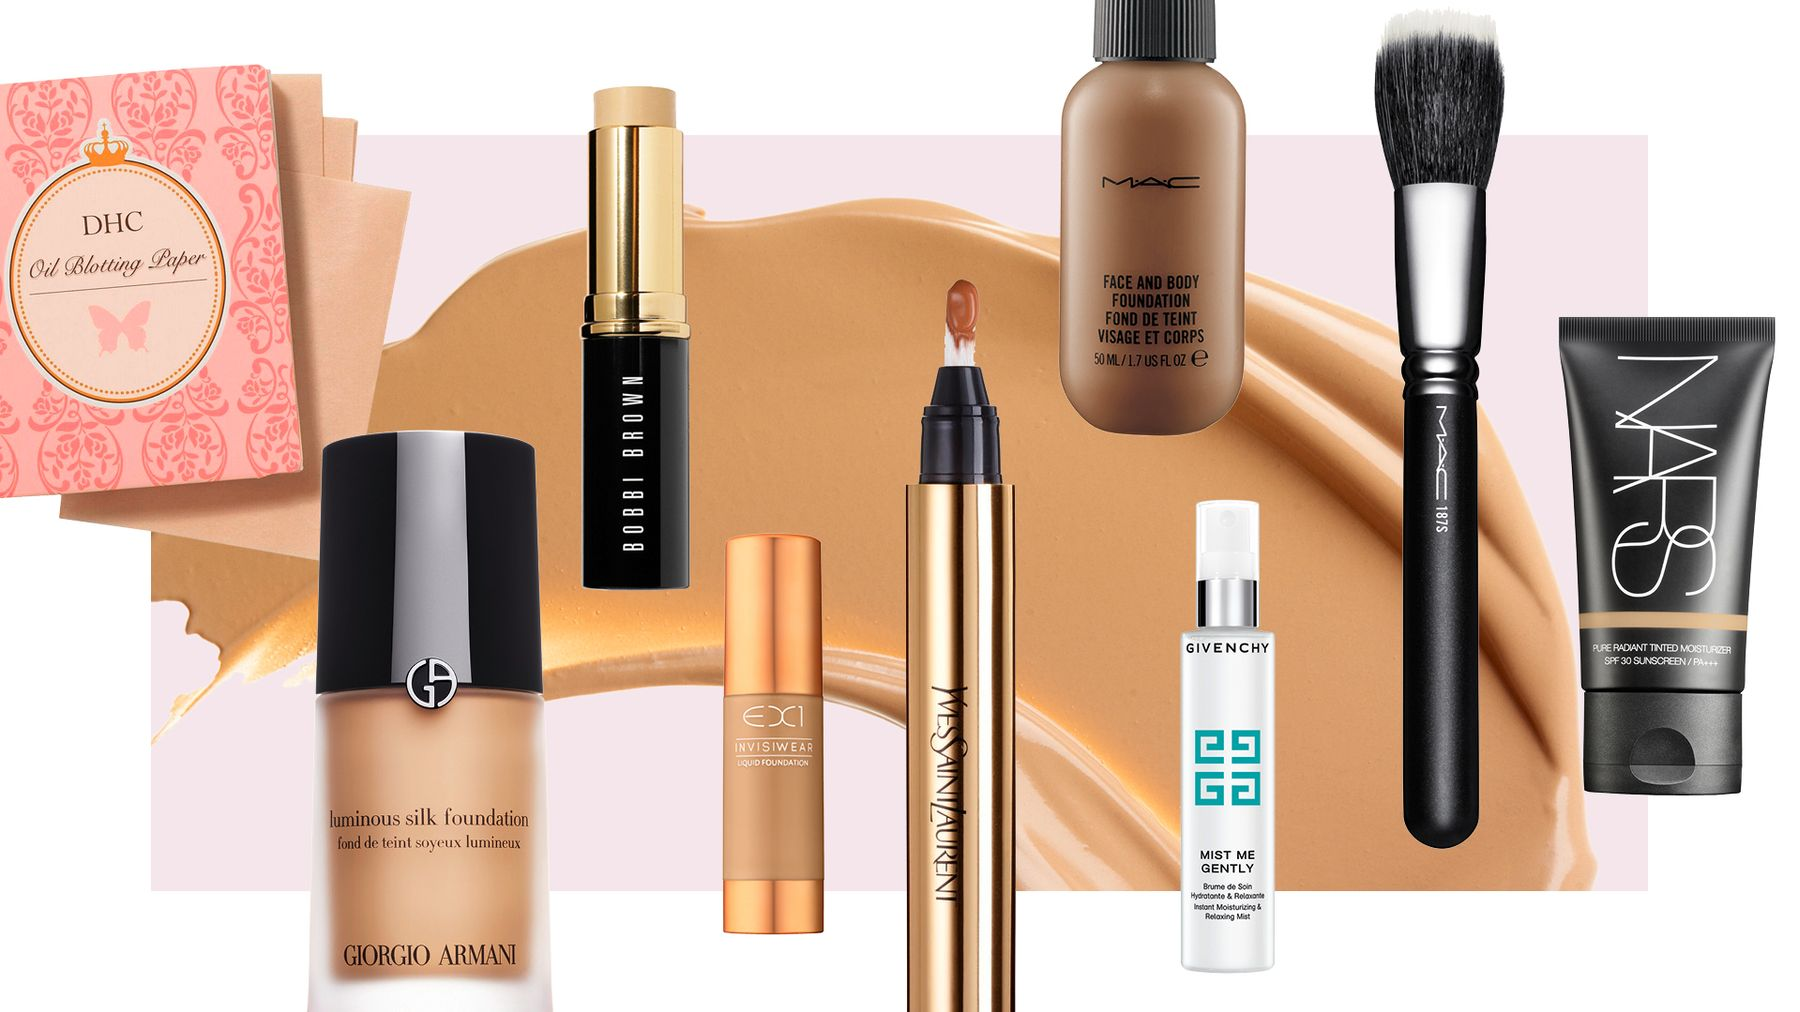 To help save you time (and sanity) we have narrowed down the best foundation picks for different skin types so you can easily find your perfect match…